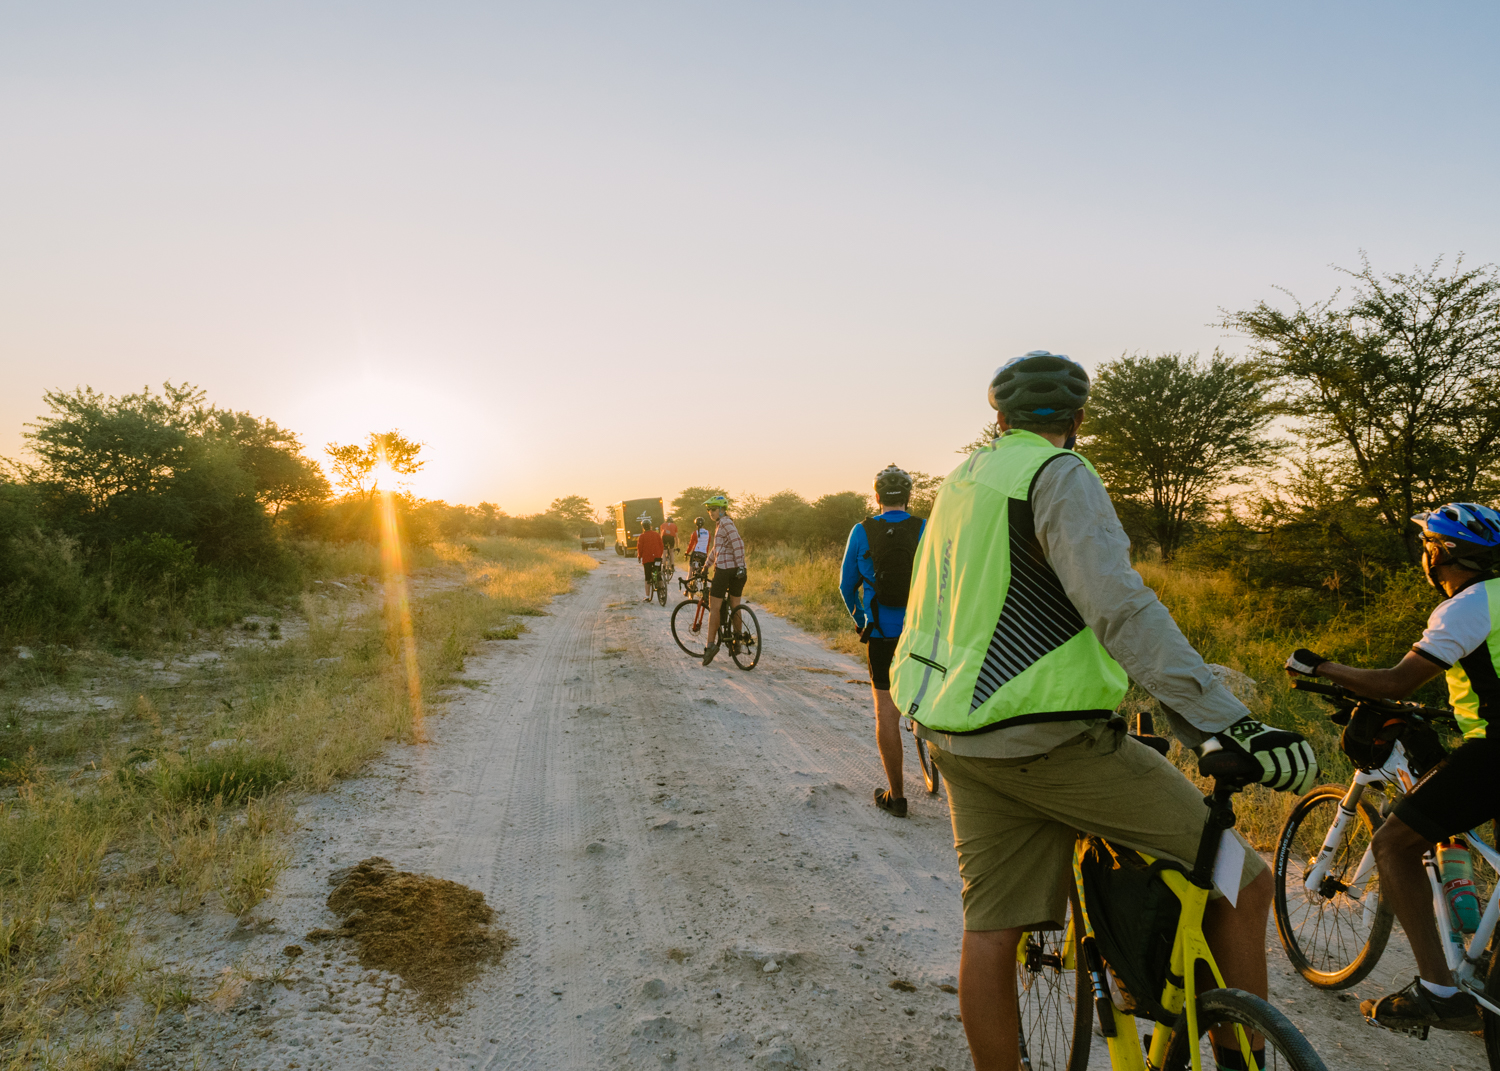 When we knew elephants were around, such as our early morning departure from Elephants Sands campground near Nata, Botswana the cyclists rode together in a convoy. The fresh elephant poo is a sure tip off that they were nearby, and we had seen many the night before in camp.